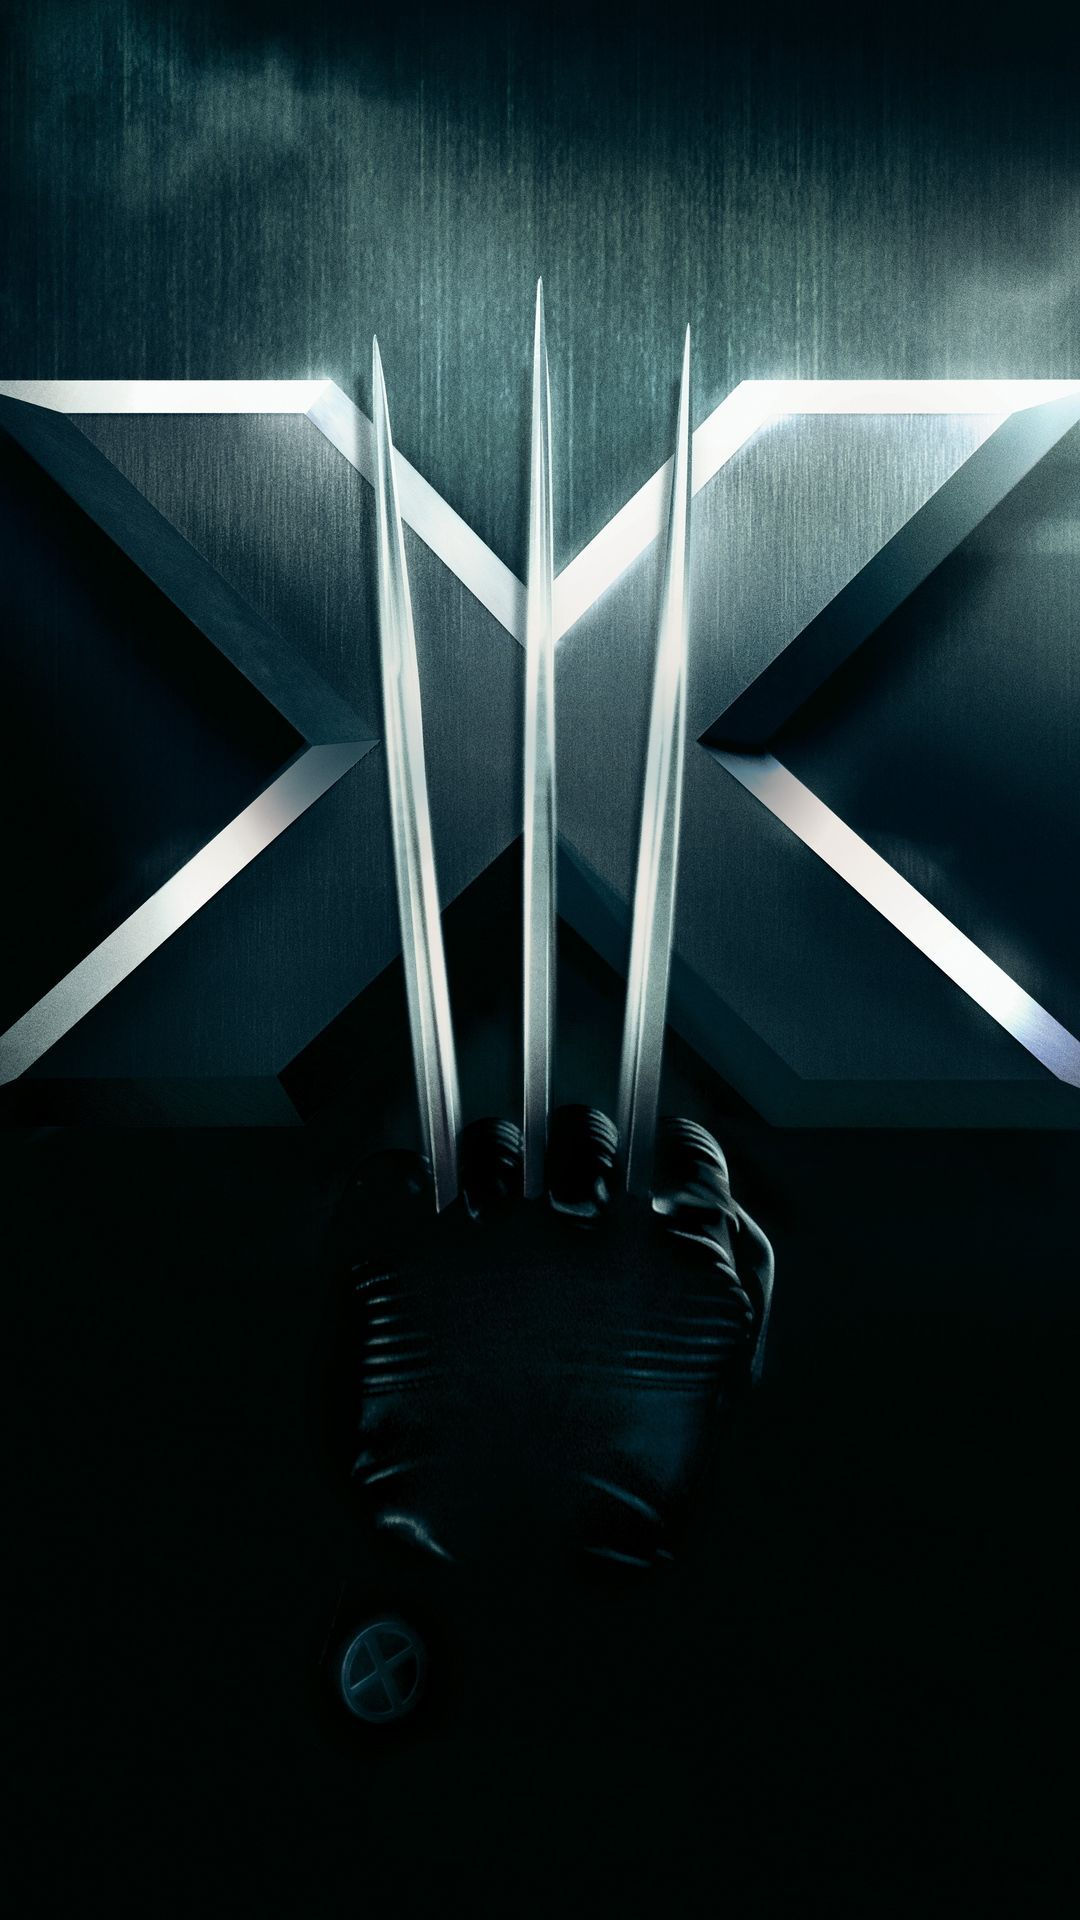 1080x1920 ↑↑TAP AND GET THE FREE APP! Movies & Music X Men Wolverine Dark ...